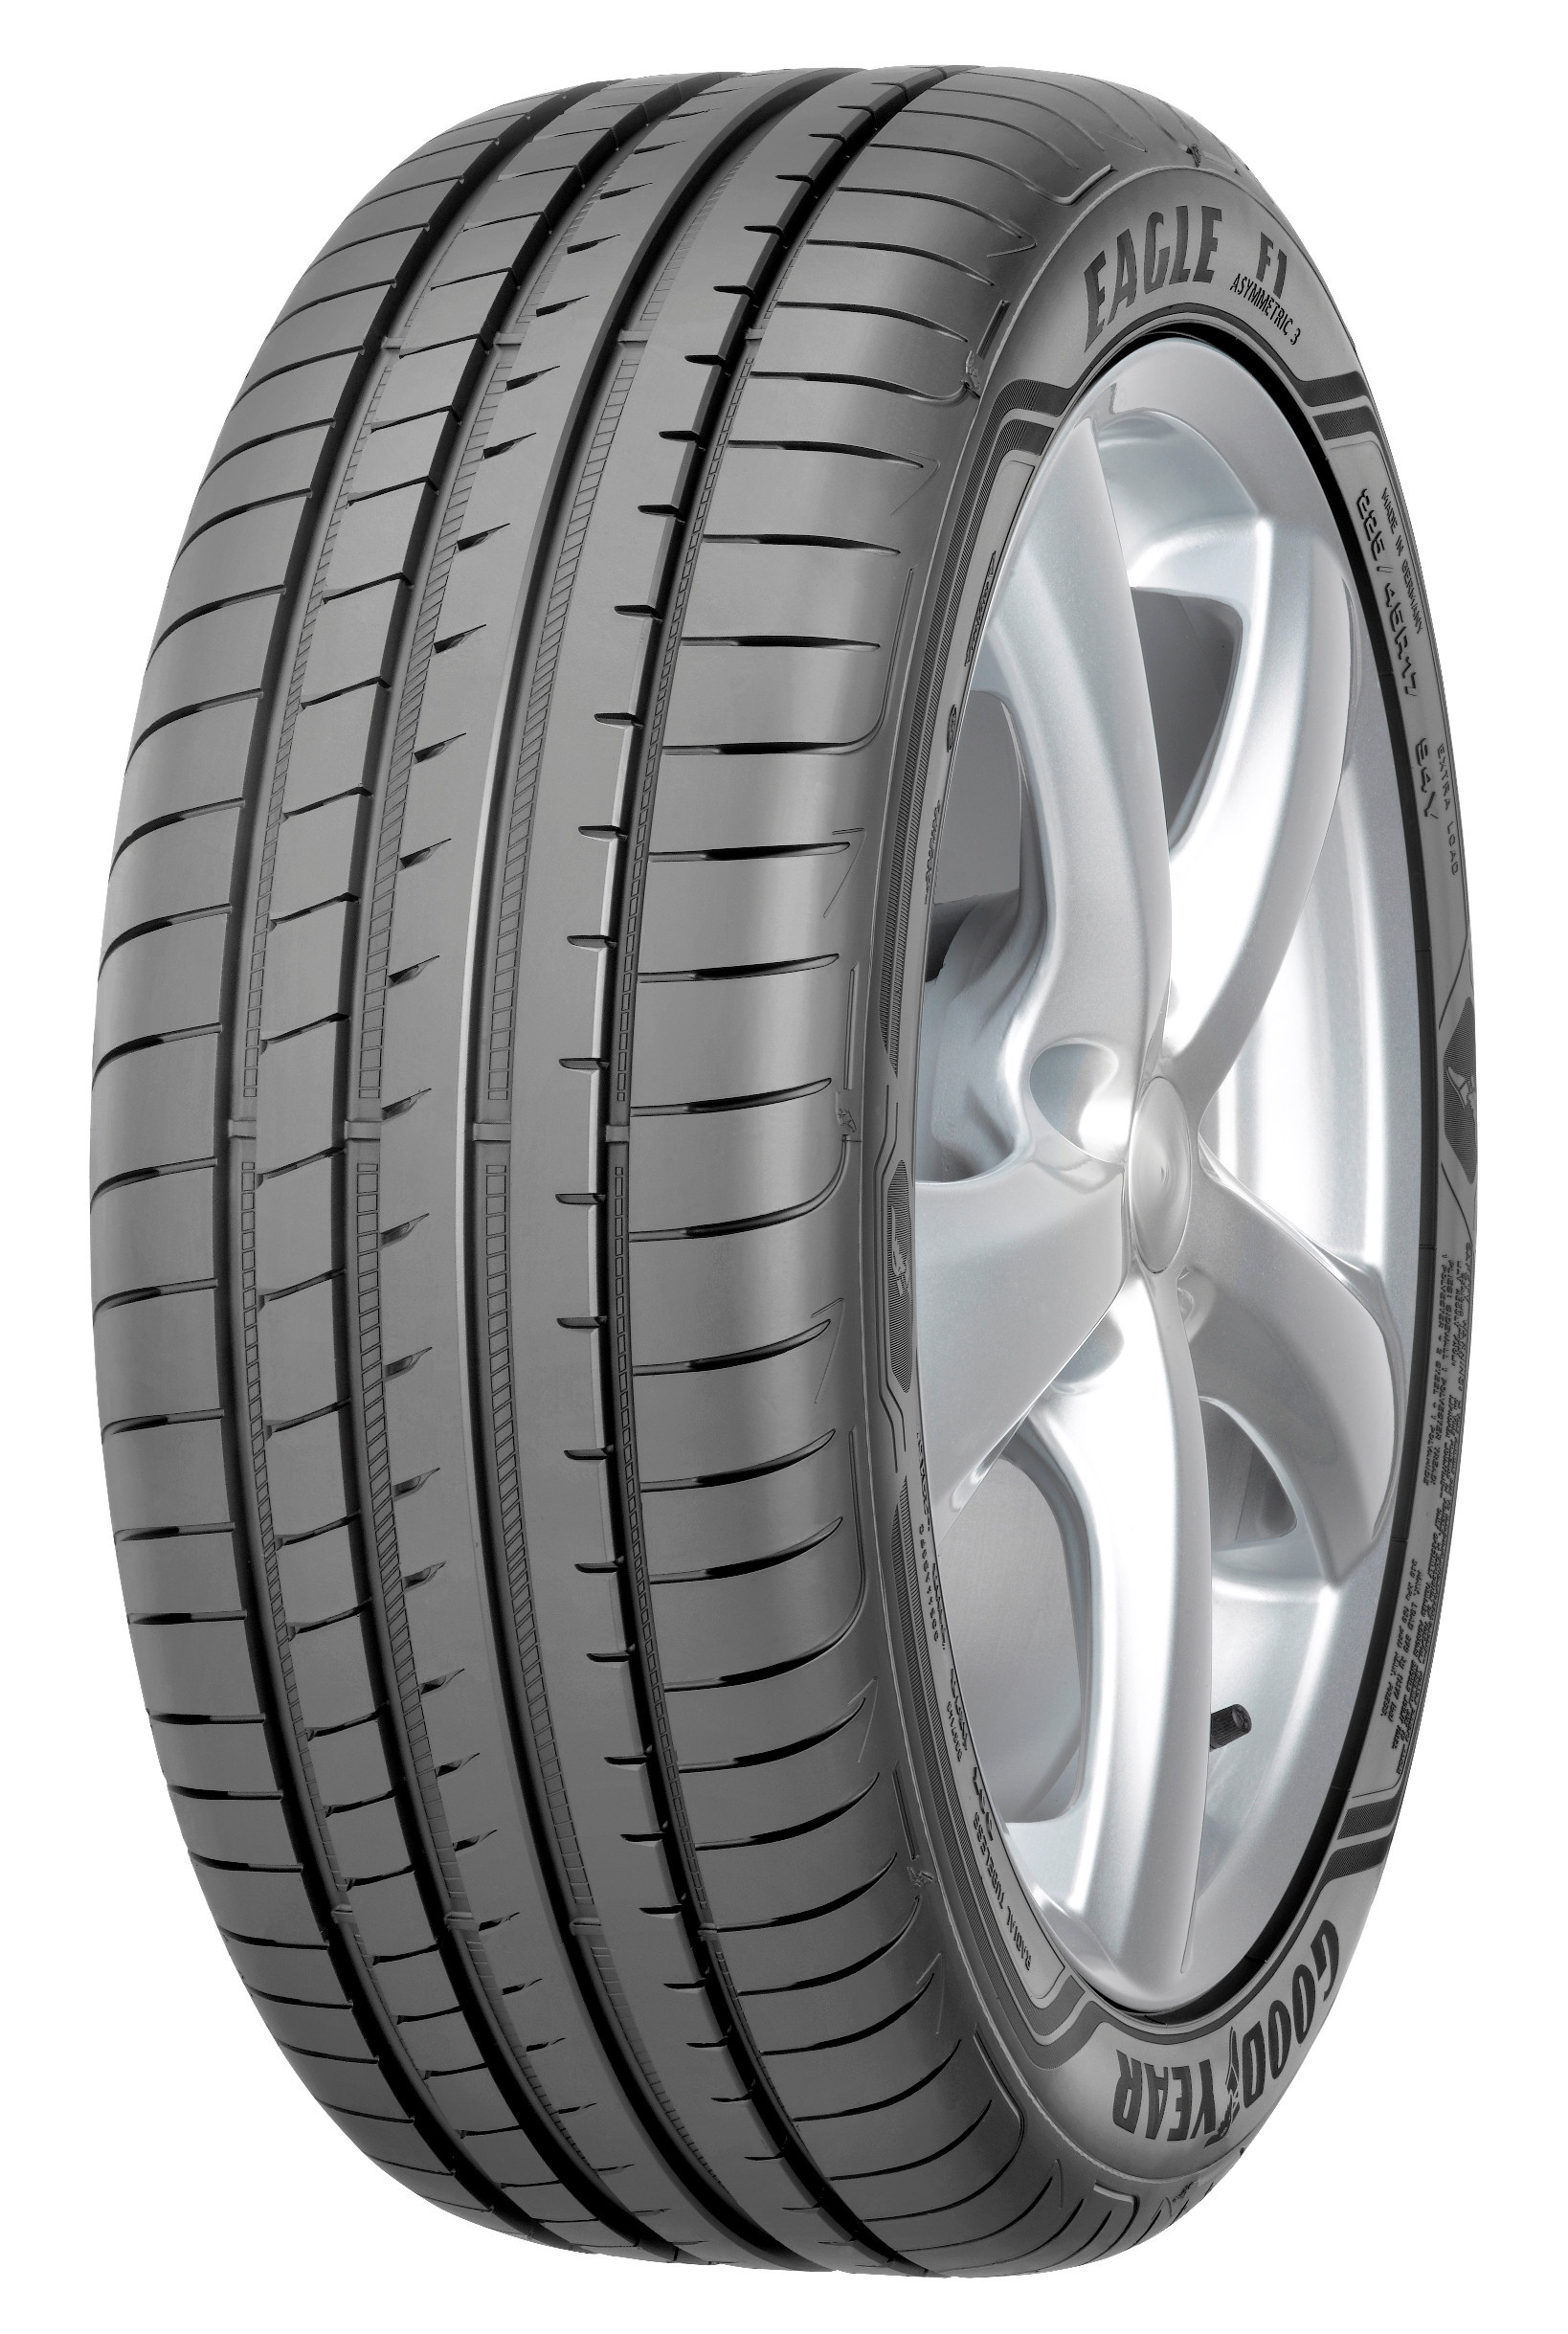 Anvelopa Vara 225/55R17 101W Goodyear Eagle F1 Asymmetric 3 Xl